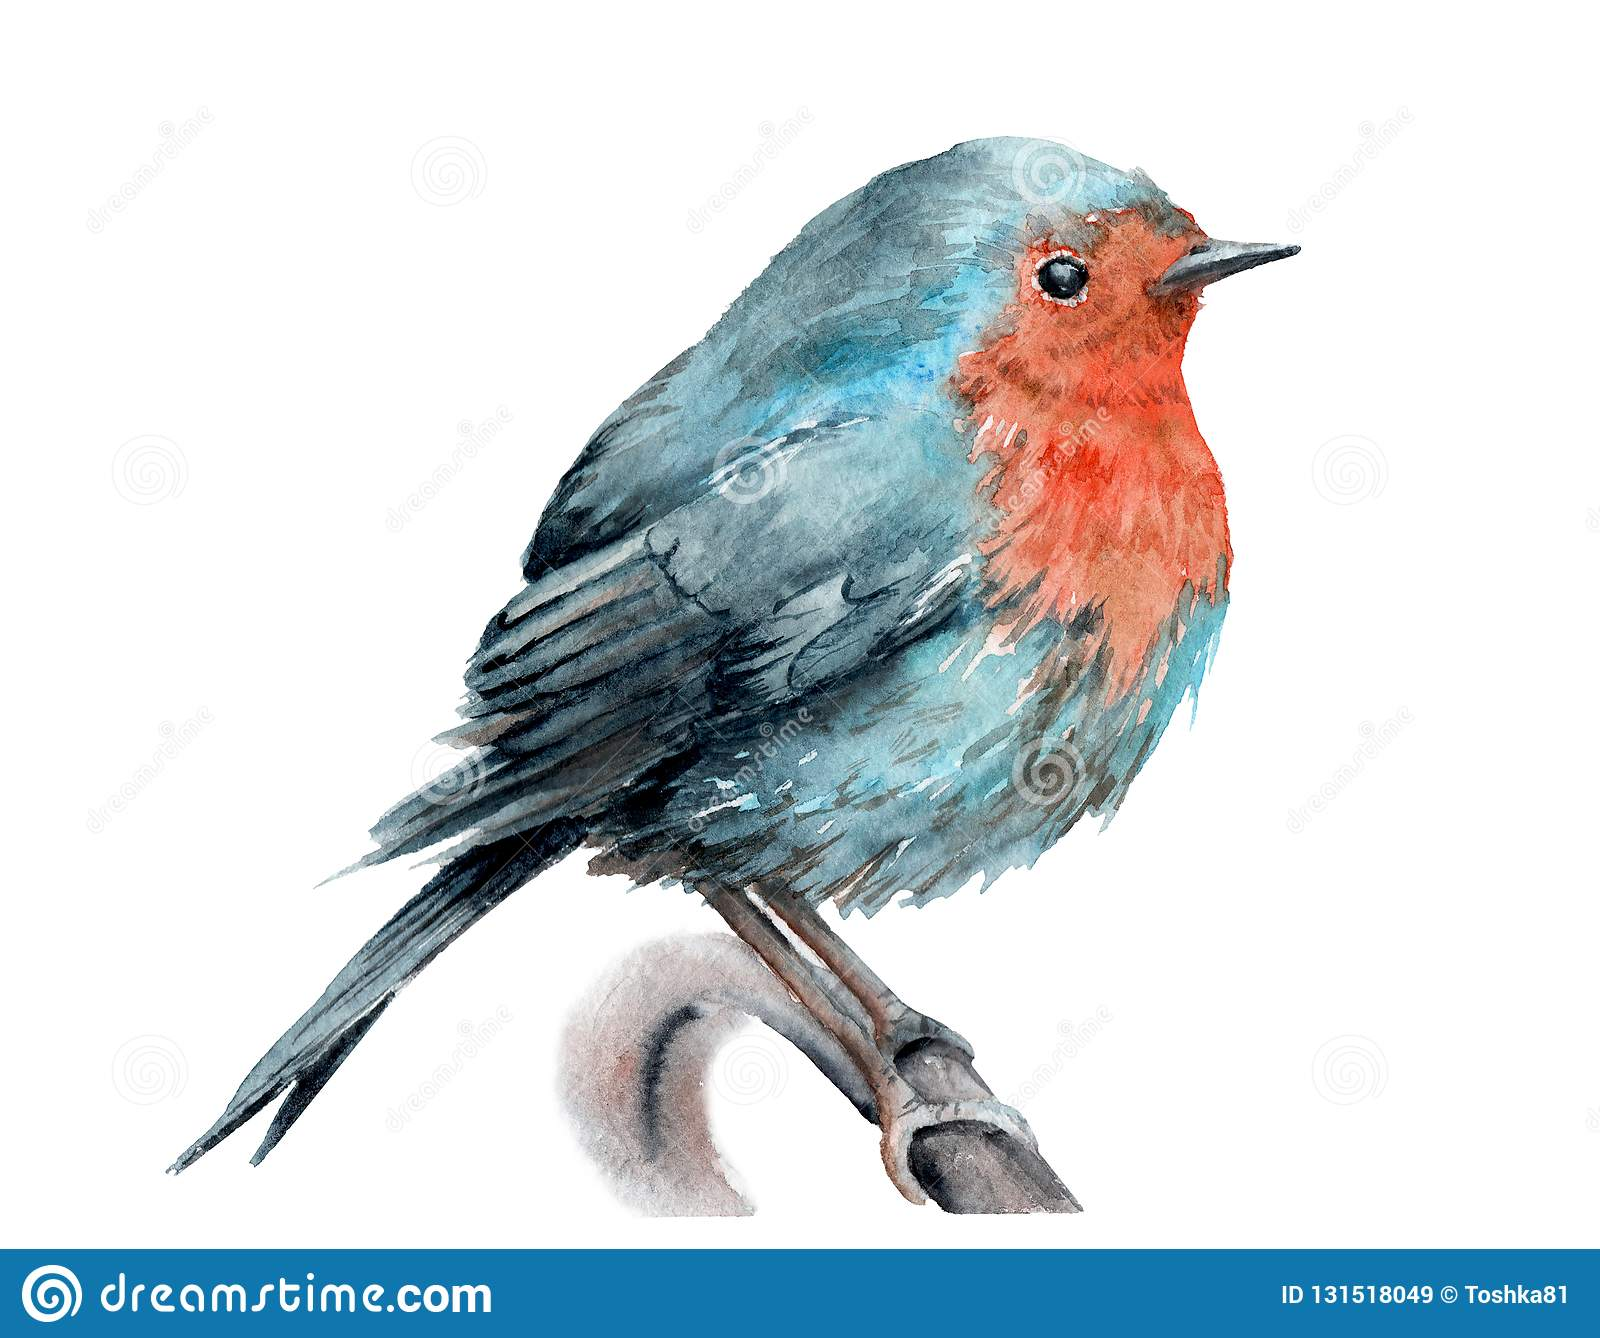 Watercolor drawing of a bird. robin on a branch